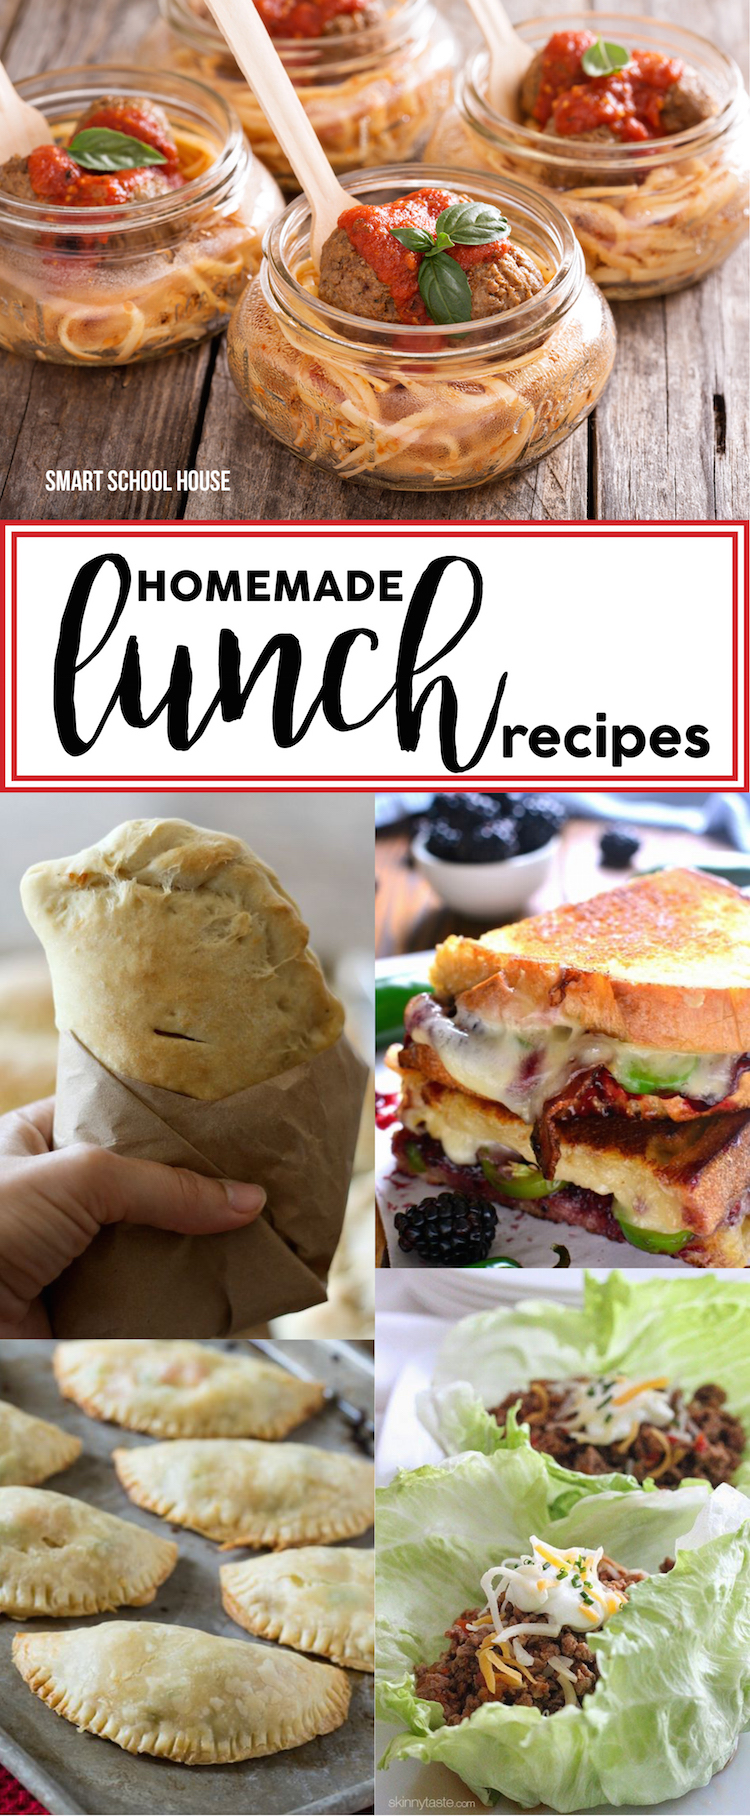 lunch lunches homemade recipes easy healthy diy eat smart yourself work meals snacks really some recipe box menu